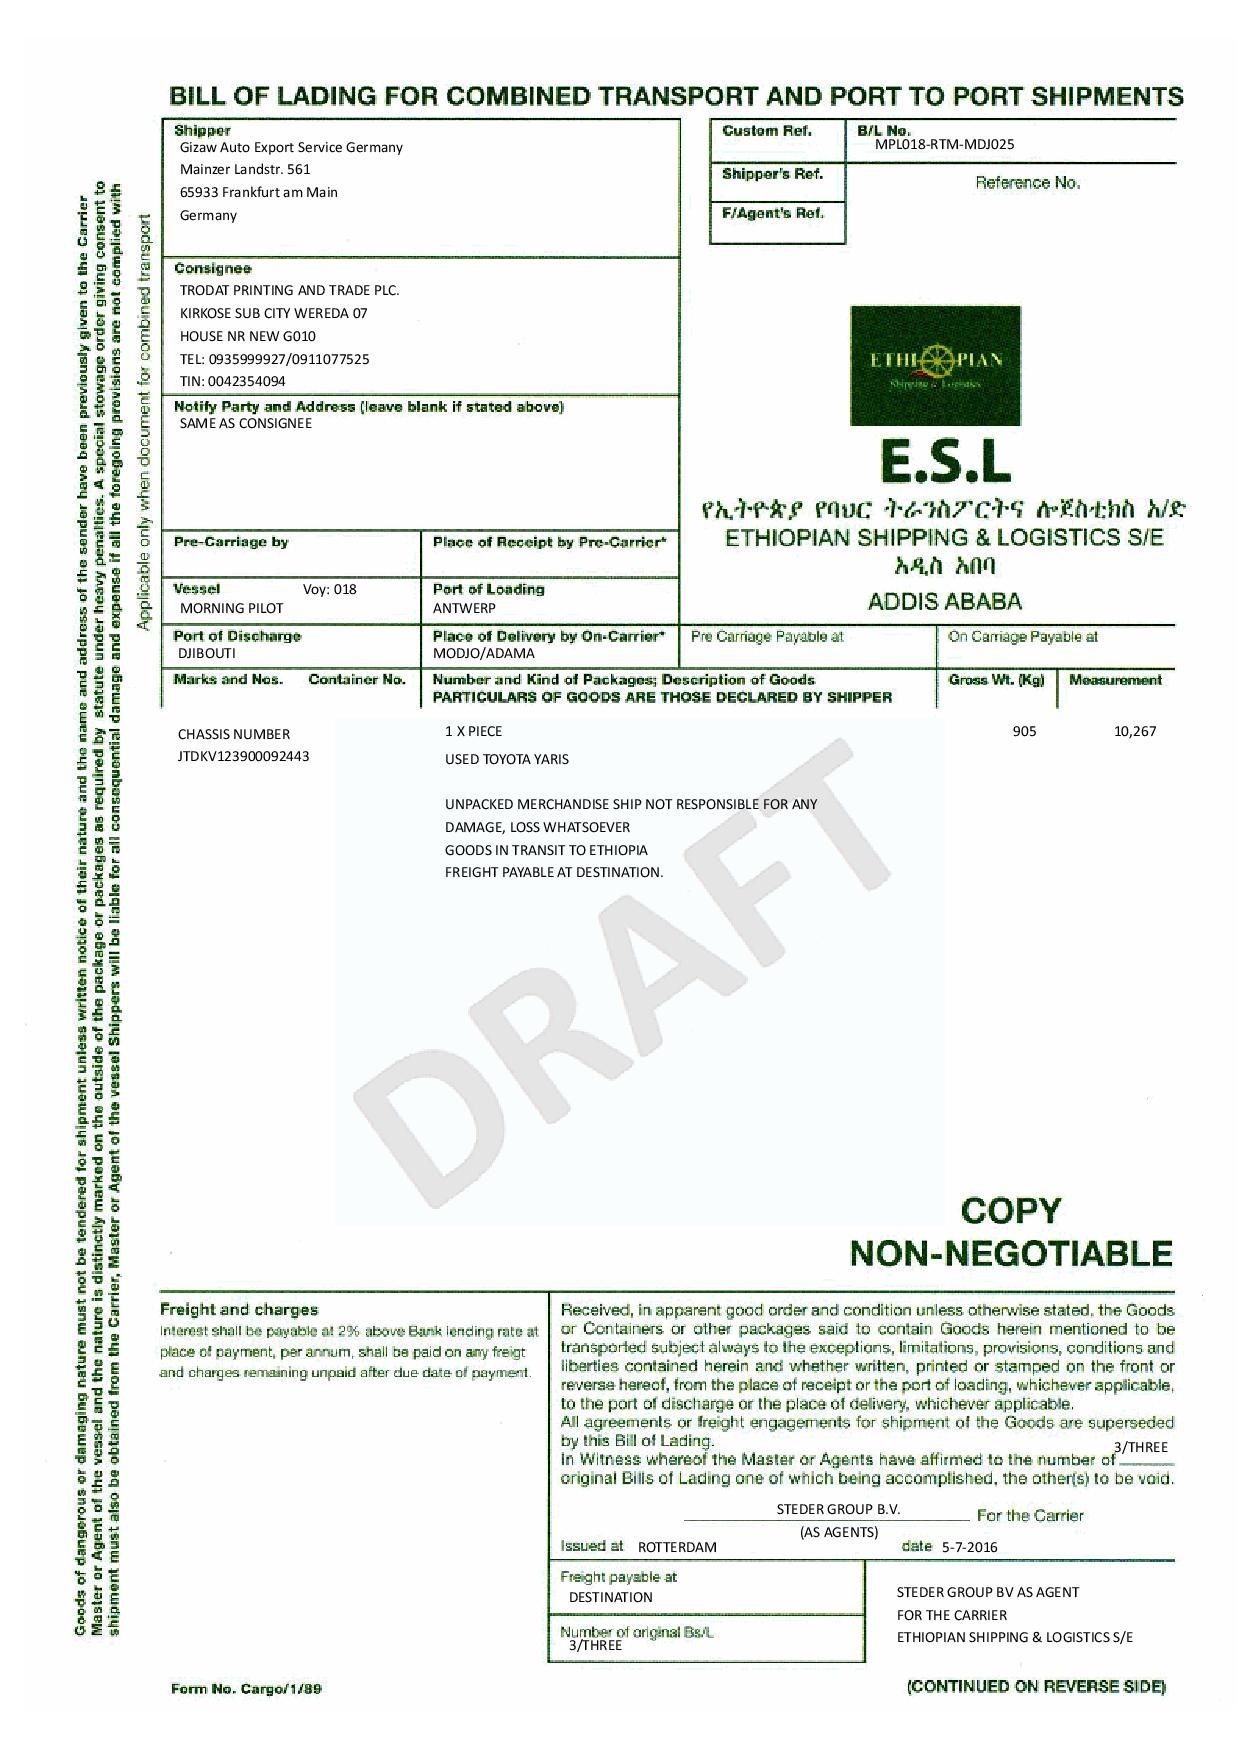 Example of Bill of Lading